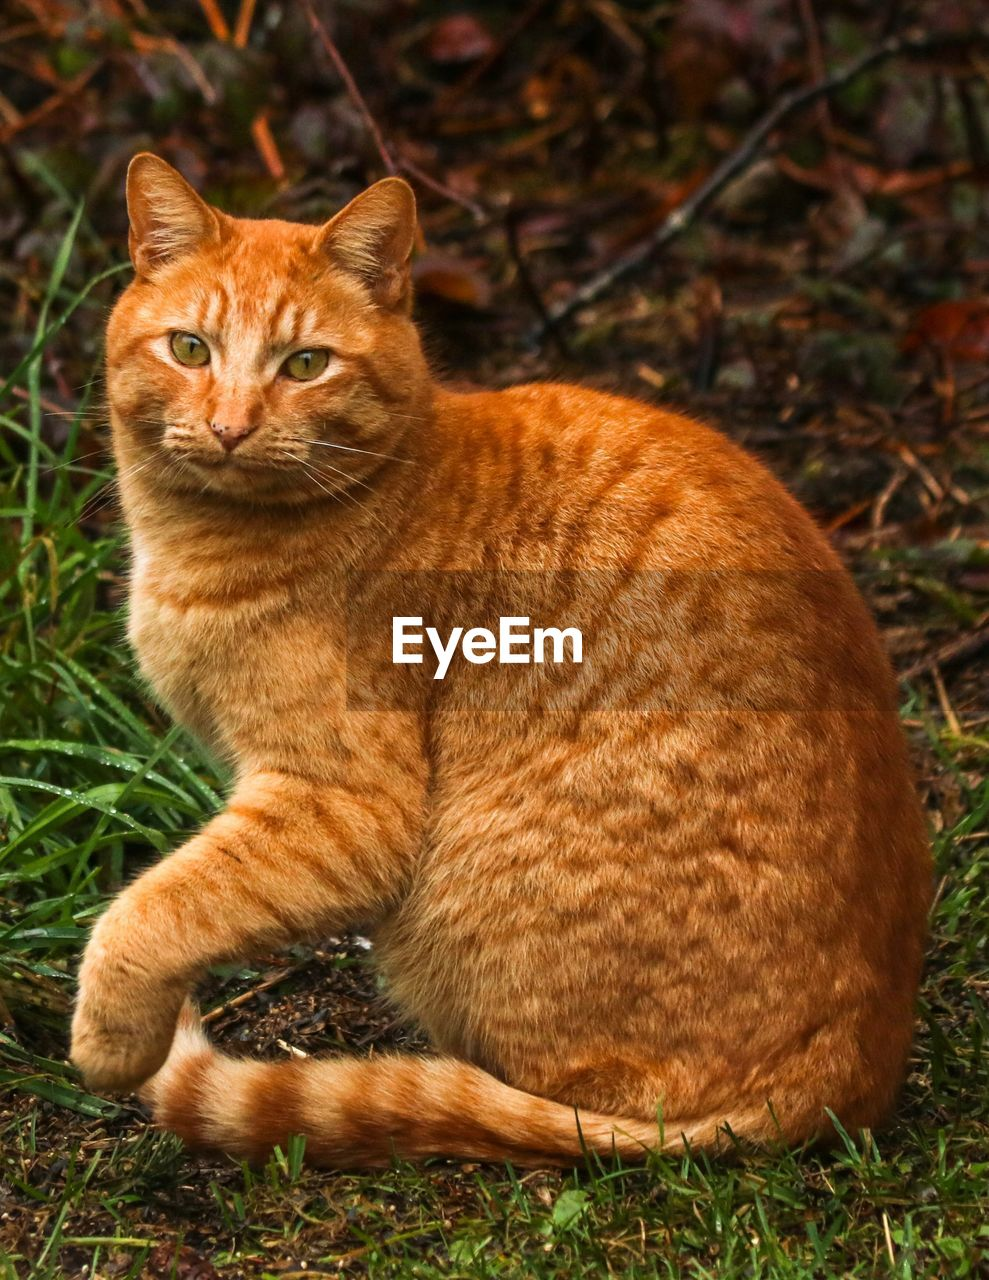 animal themes, animal, one animal, mammal, feline, cat, vertebrate, grass, pets, no people, sitting, domestic animals, domestic, nature, field, plant, day, land, domestic cat, looking at camera, ginger cat, whisker